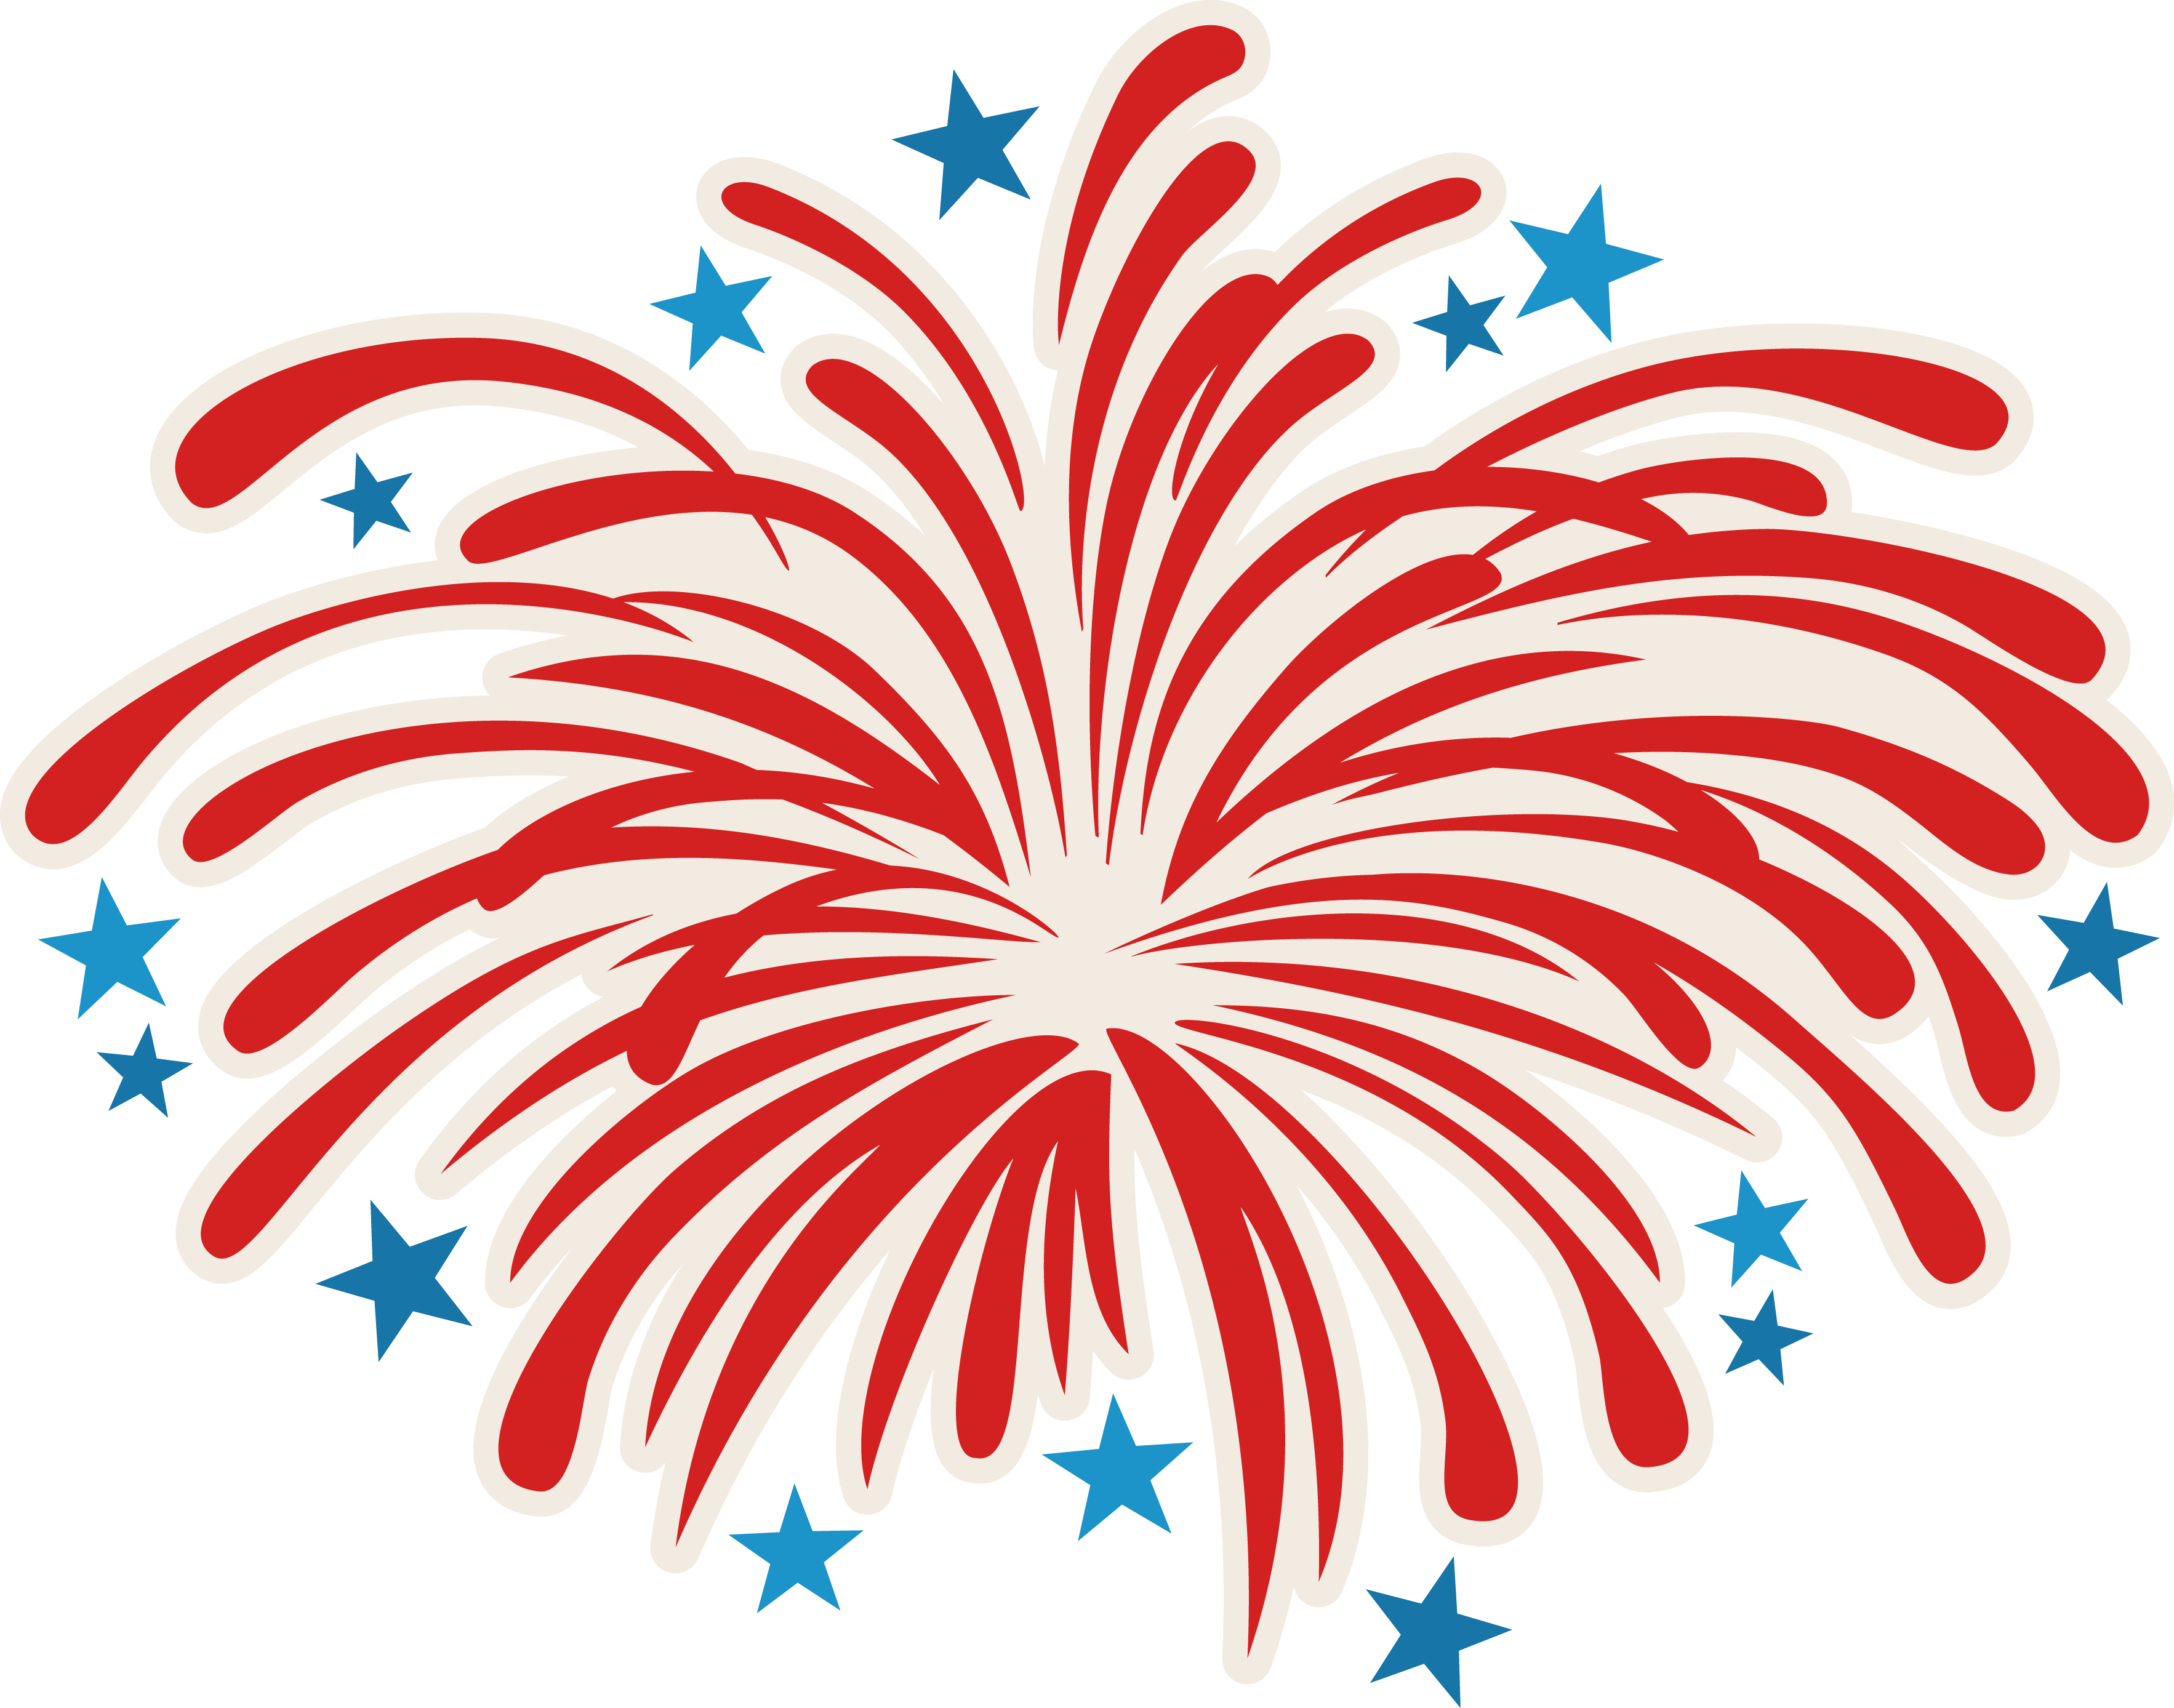 Firework blast svg s. Football fireworks after the game clipart